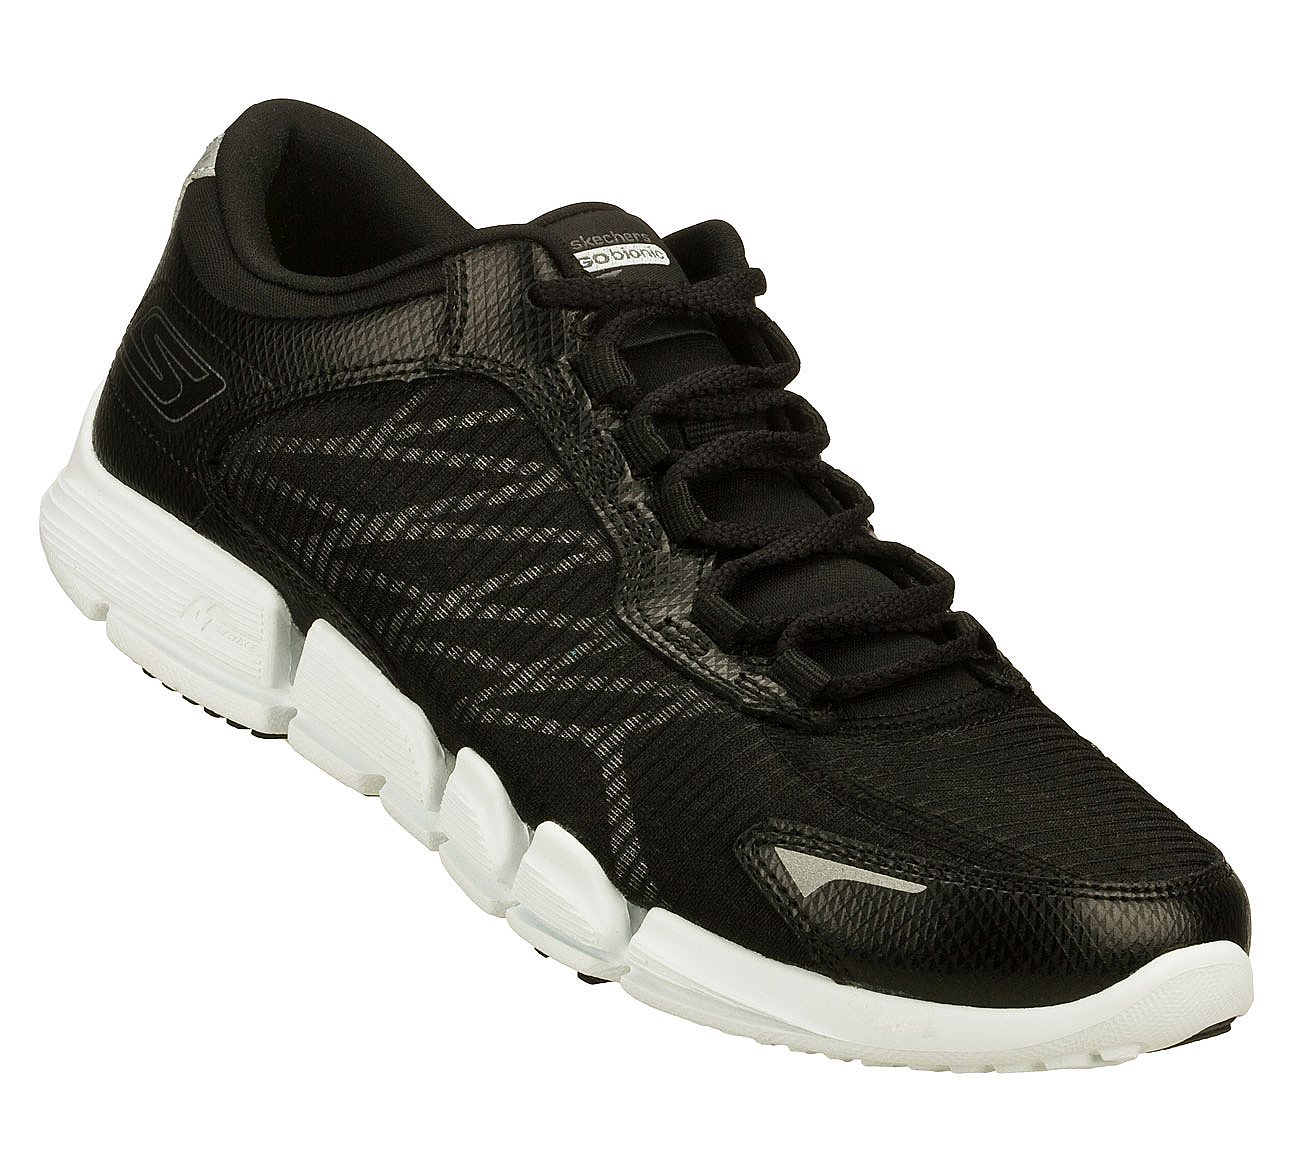 Skechers GObionic Fuel Running Shoes Shoes